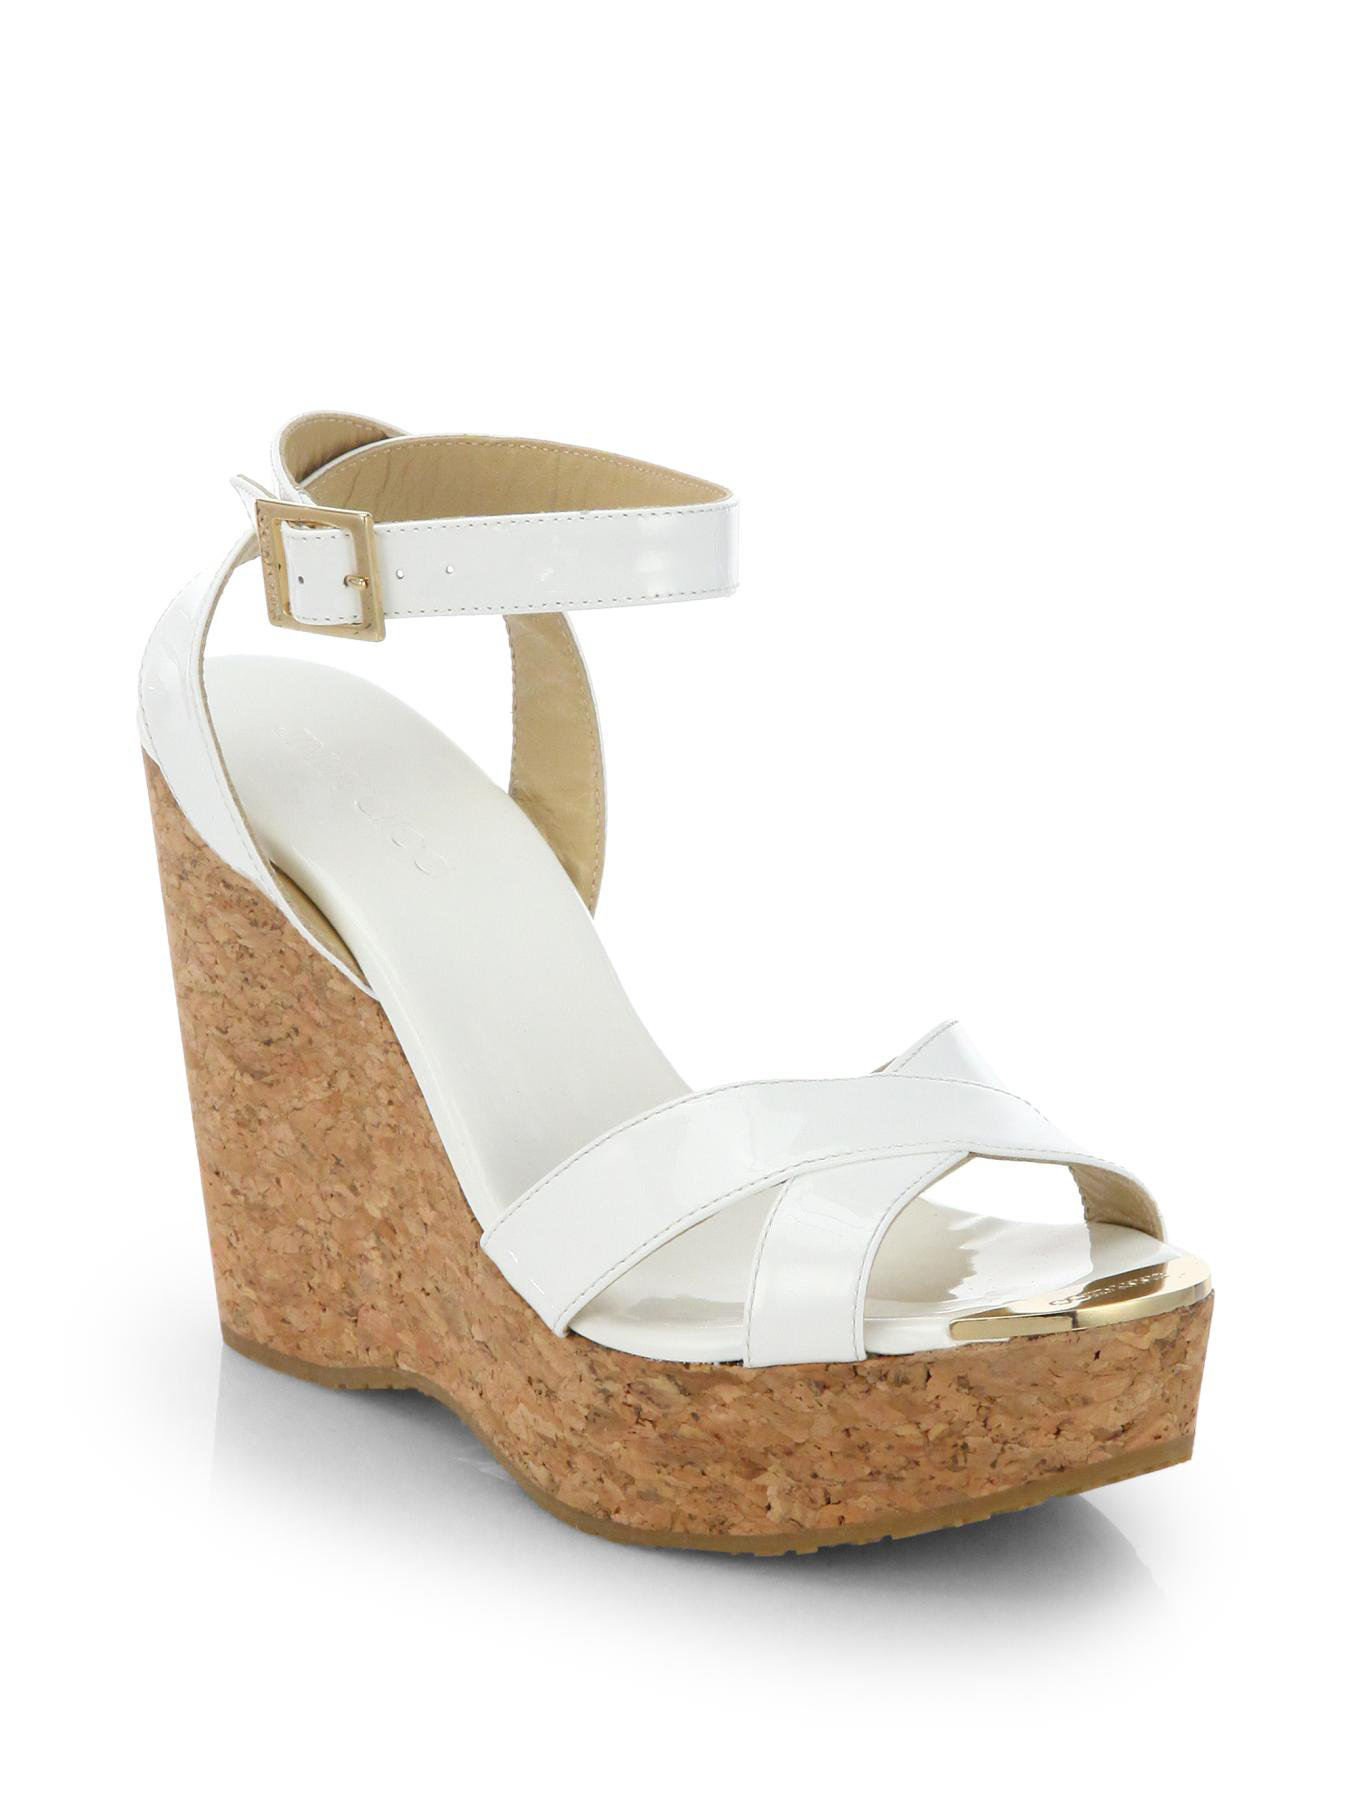 Lyst Jimmy Choo Papyrus Patent Leather And Cork Wedge